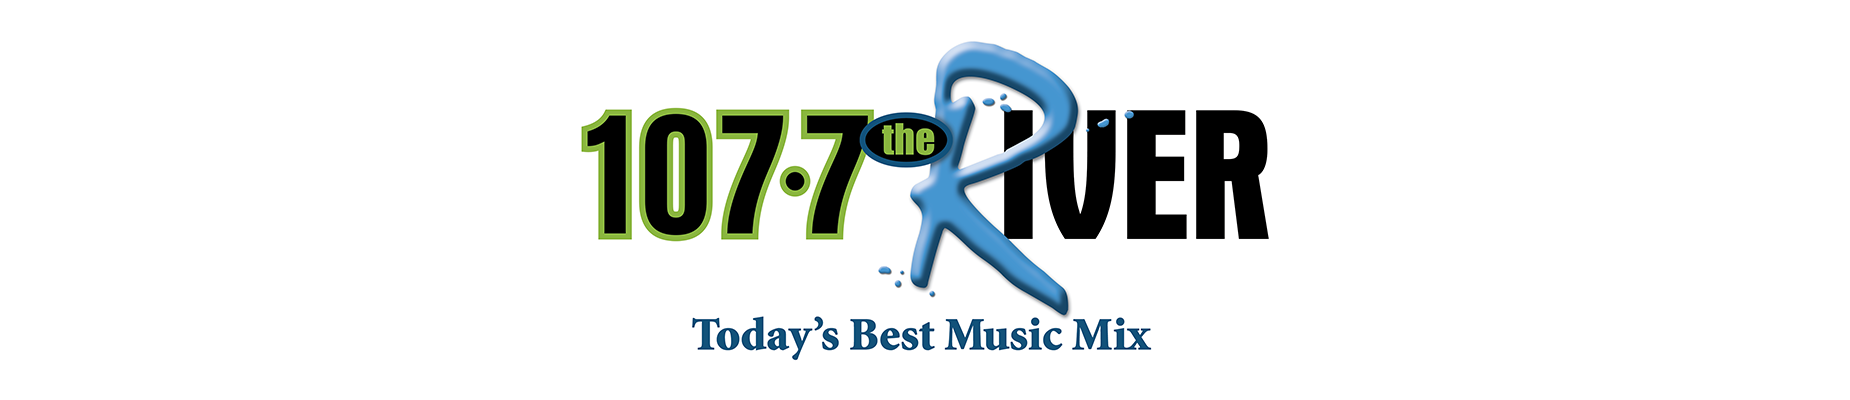 The River 107.7